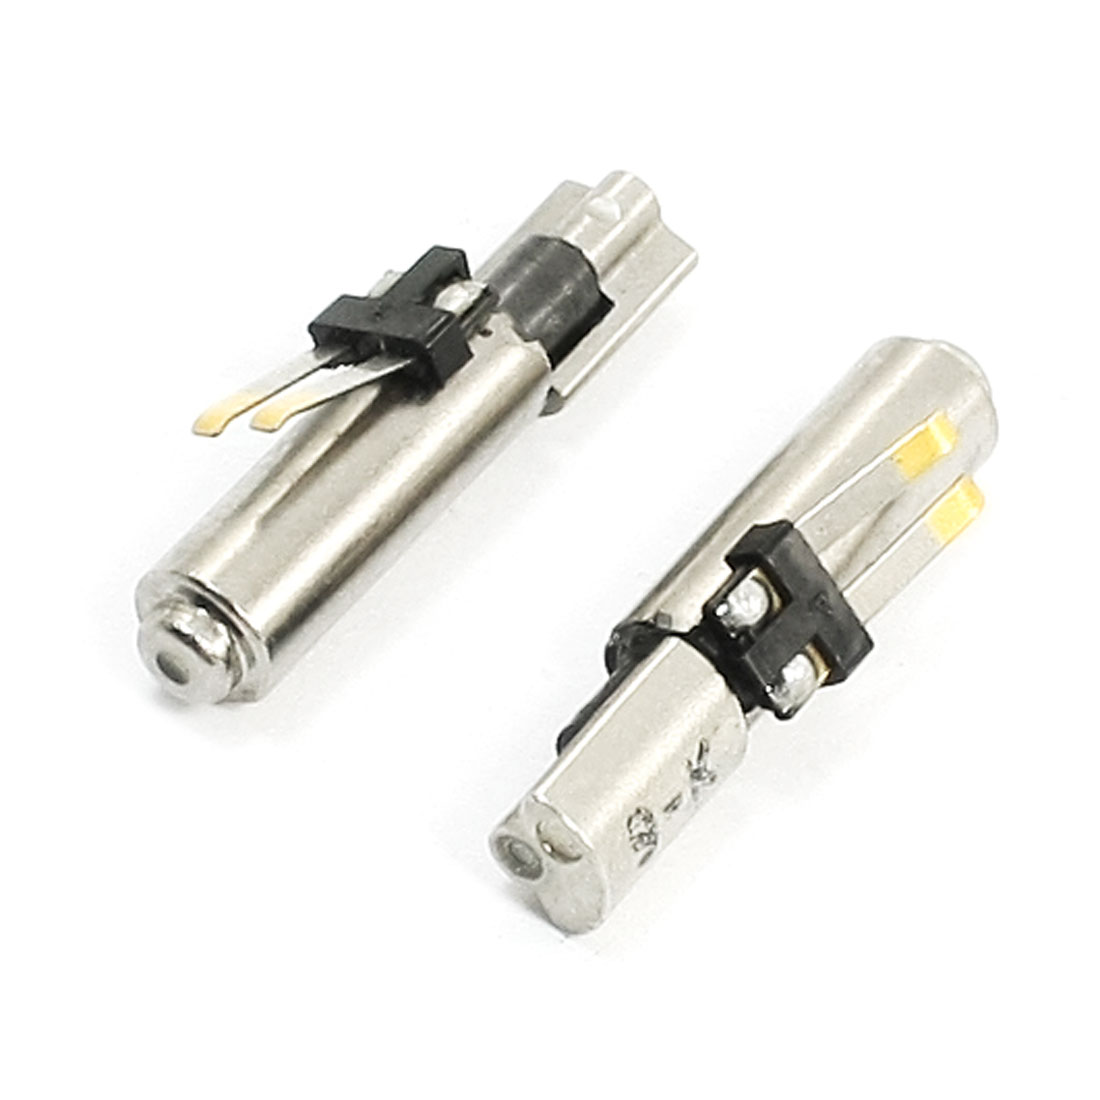 2pcs-4mmx12mm-Cell-Phone-Coreless-Vibration-Motor-900RPM-3V